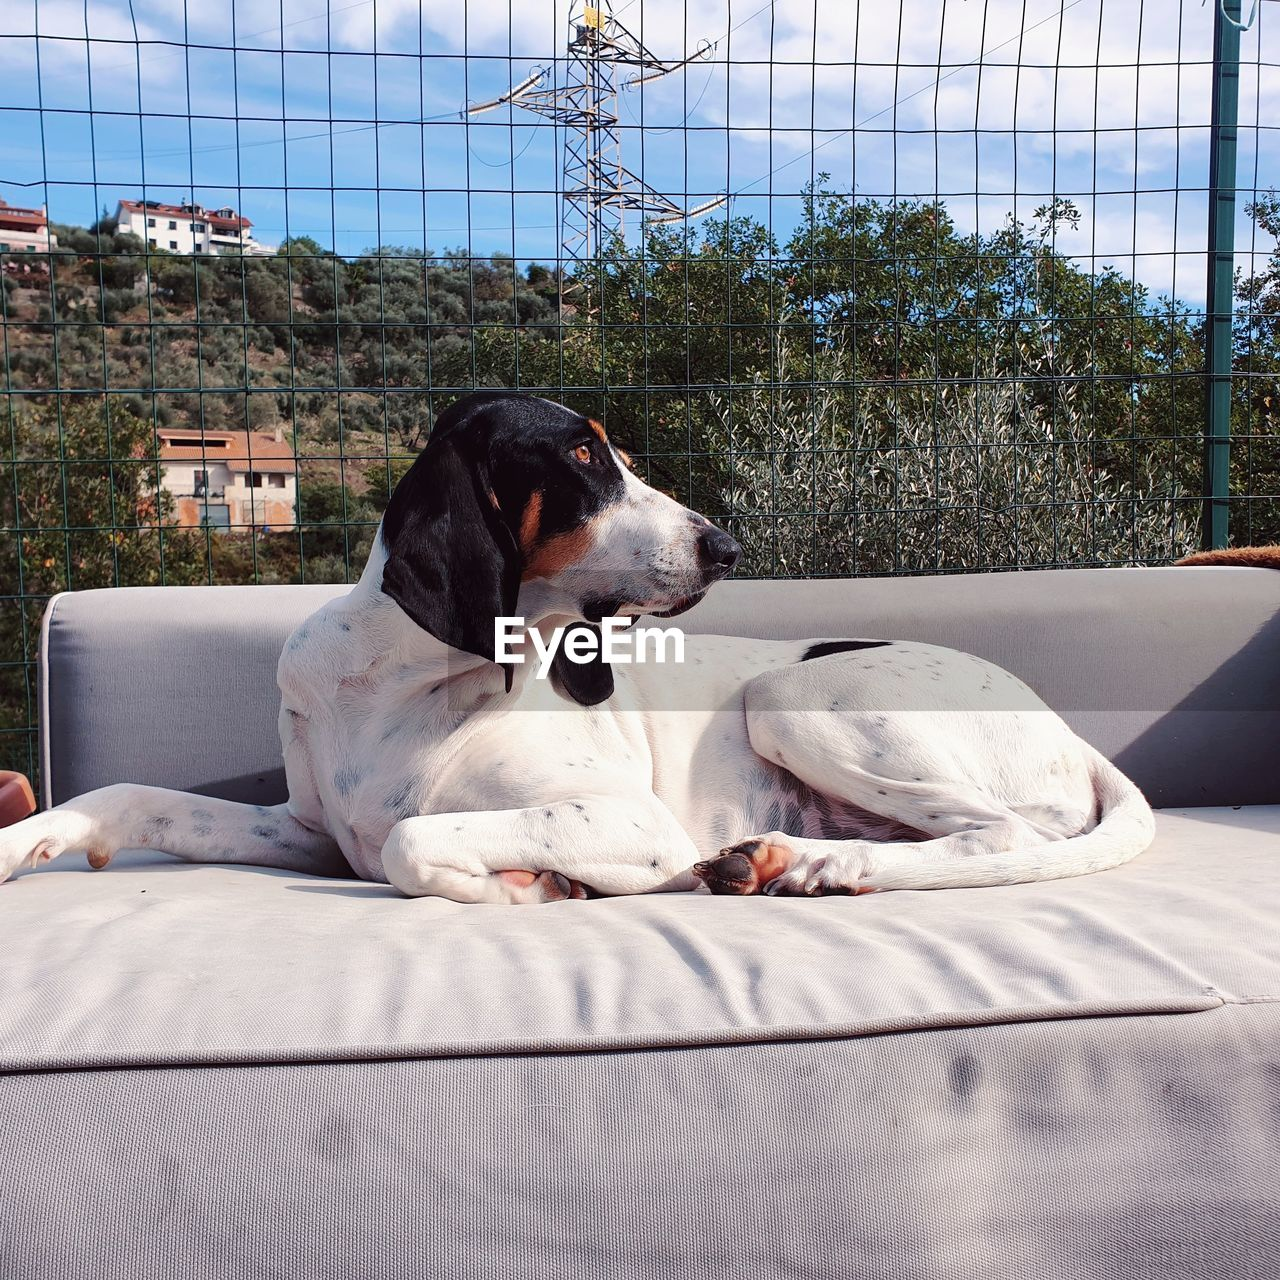 pets, domestic, domestic animals, animal themes, mammal, one animal, relaxation, canine, dog, animal, vertebrate, resting, no people, furniture, day, indoors, lying down, bed, looking, looking away